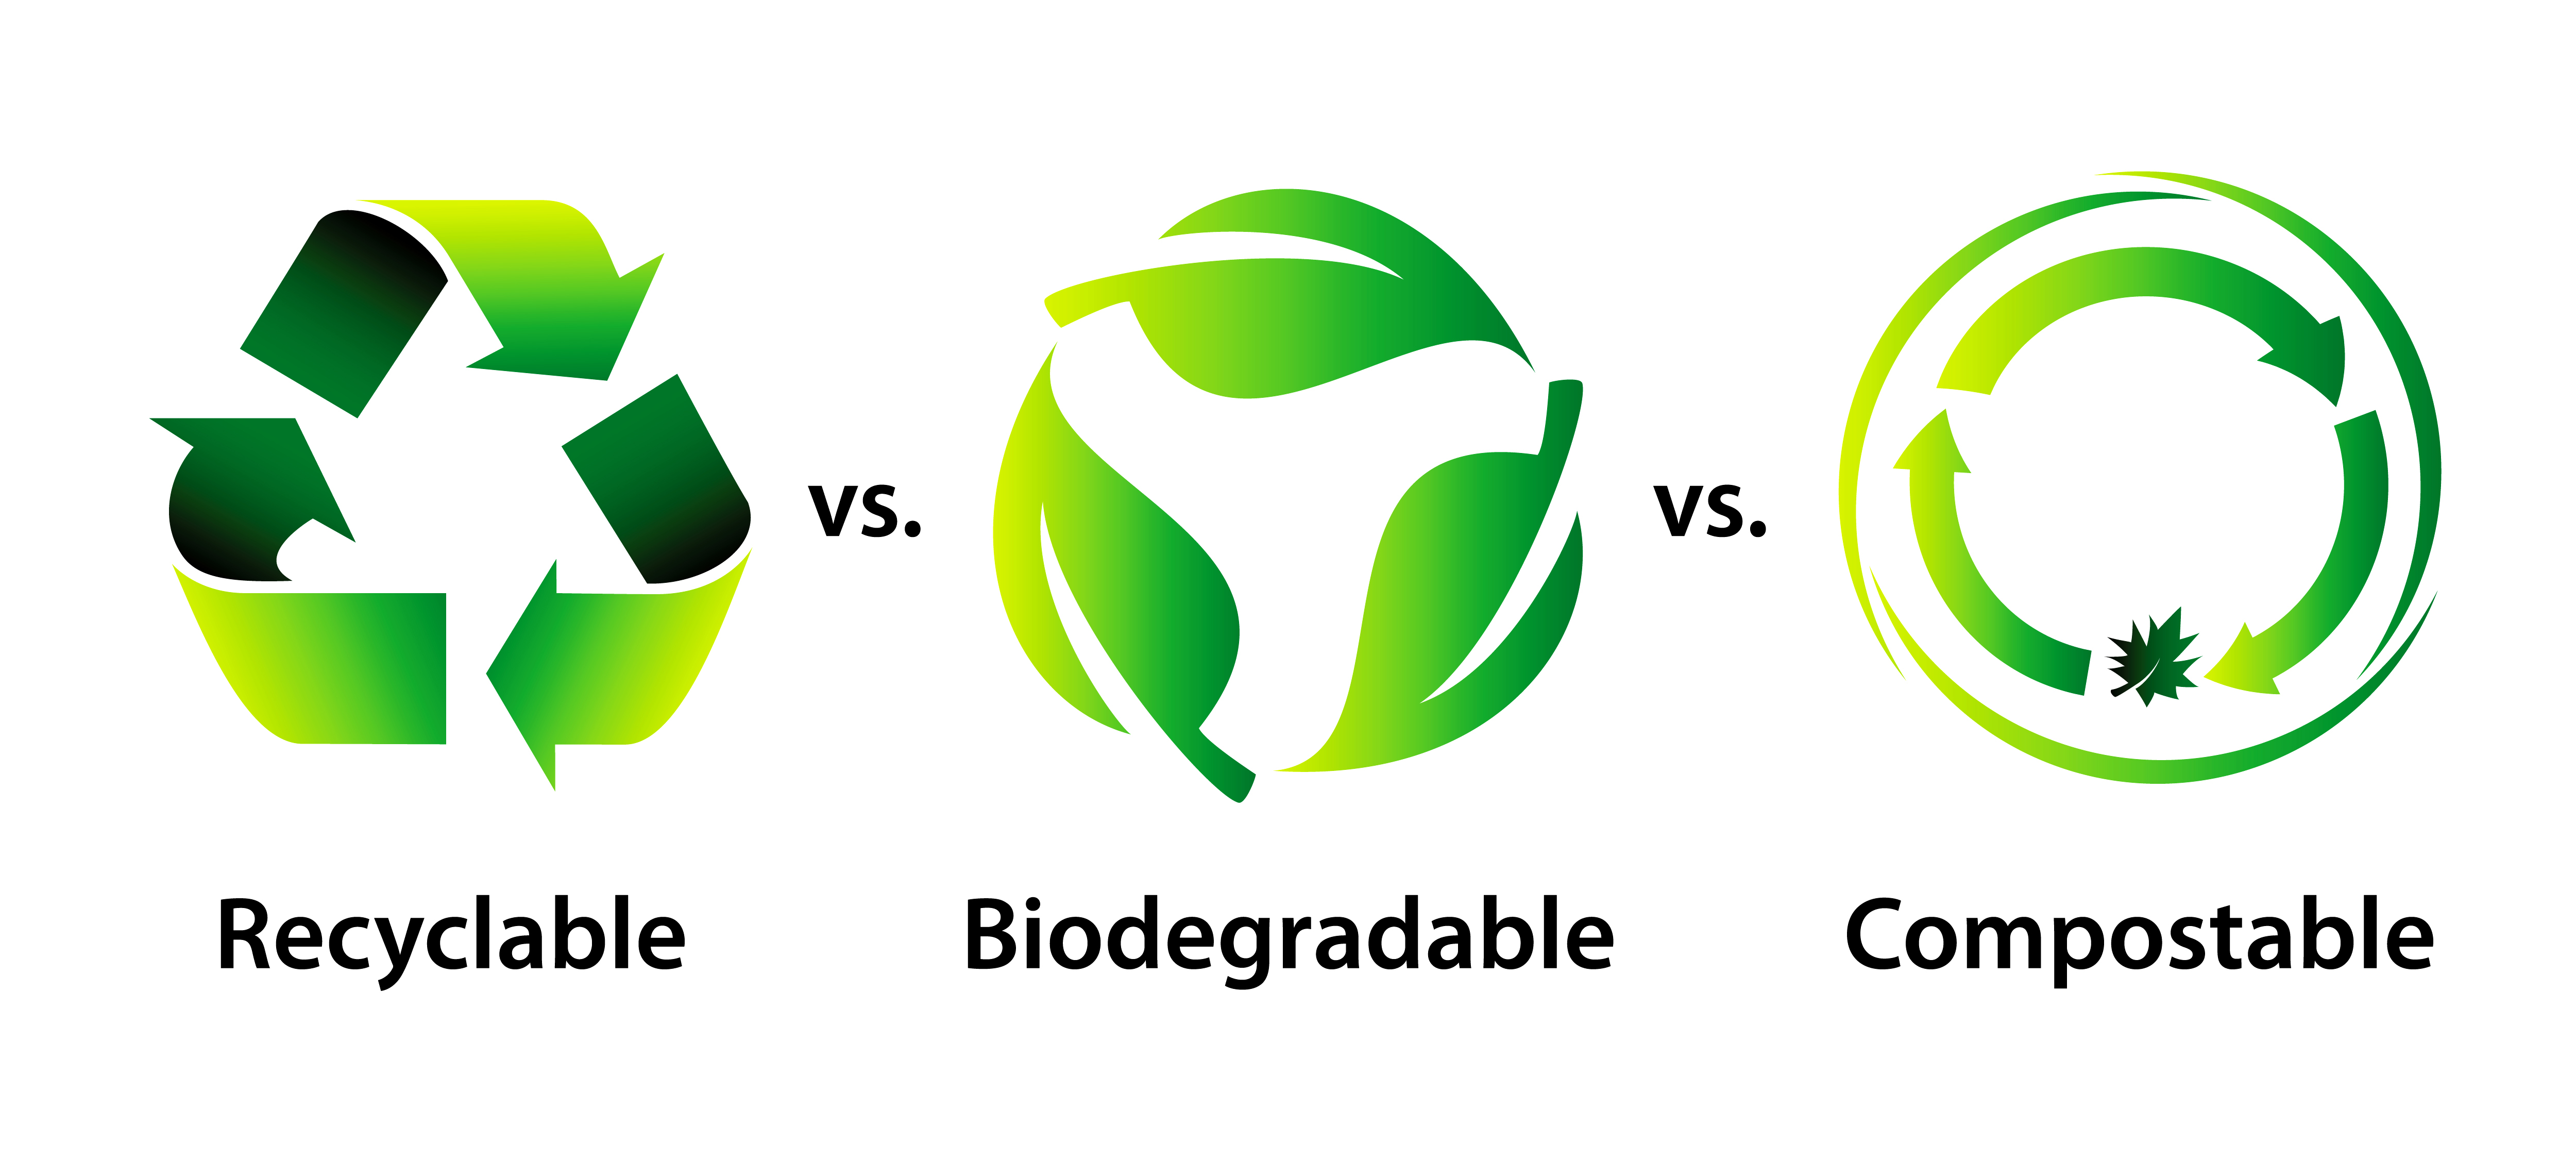 Understanding composting, biodegradability and recyclability